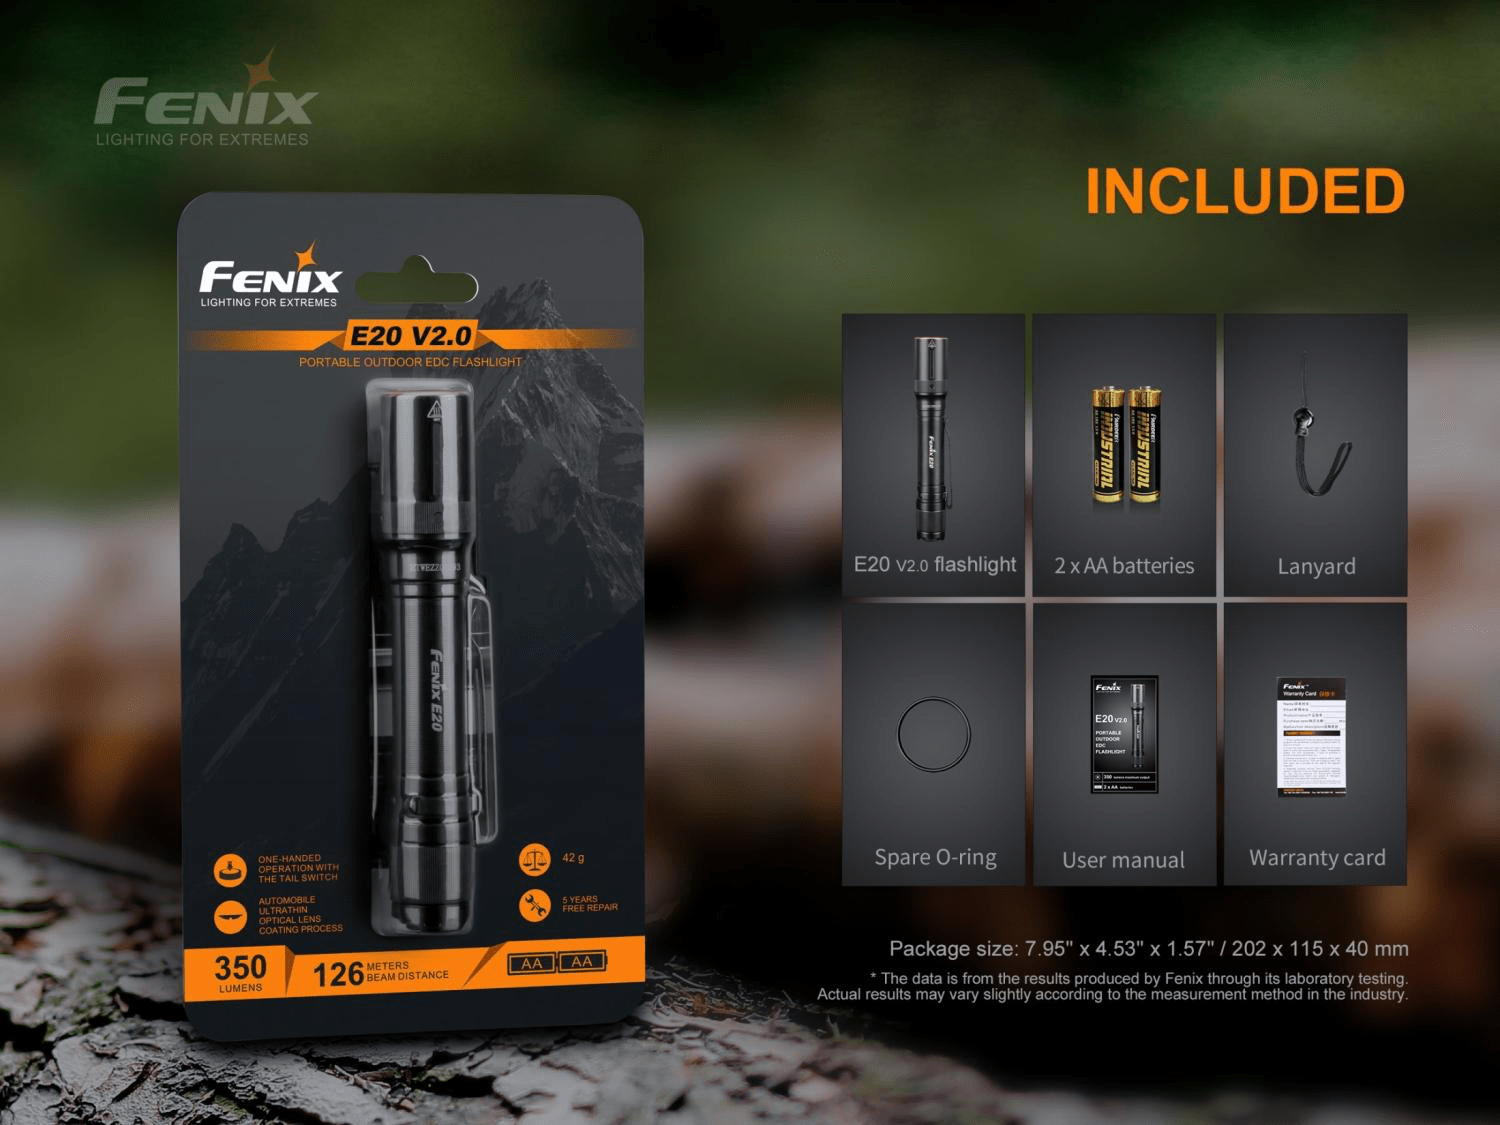 Fenix E20 V2, Fenix E20 LED Torch Light, AA Battery Torch, EDC Light for work, Compact Pen Size Torch in India, Lightweight Torch